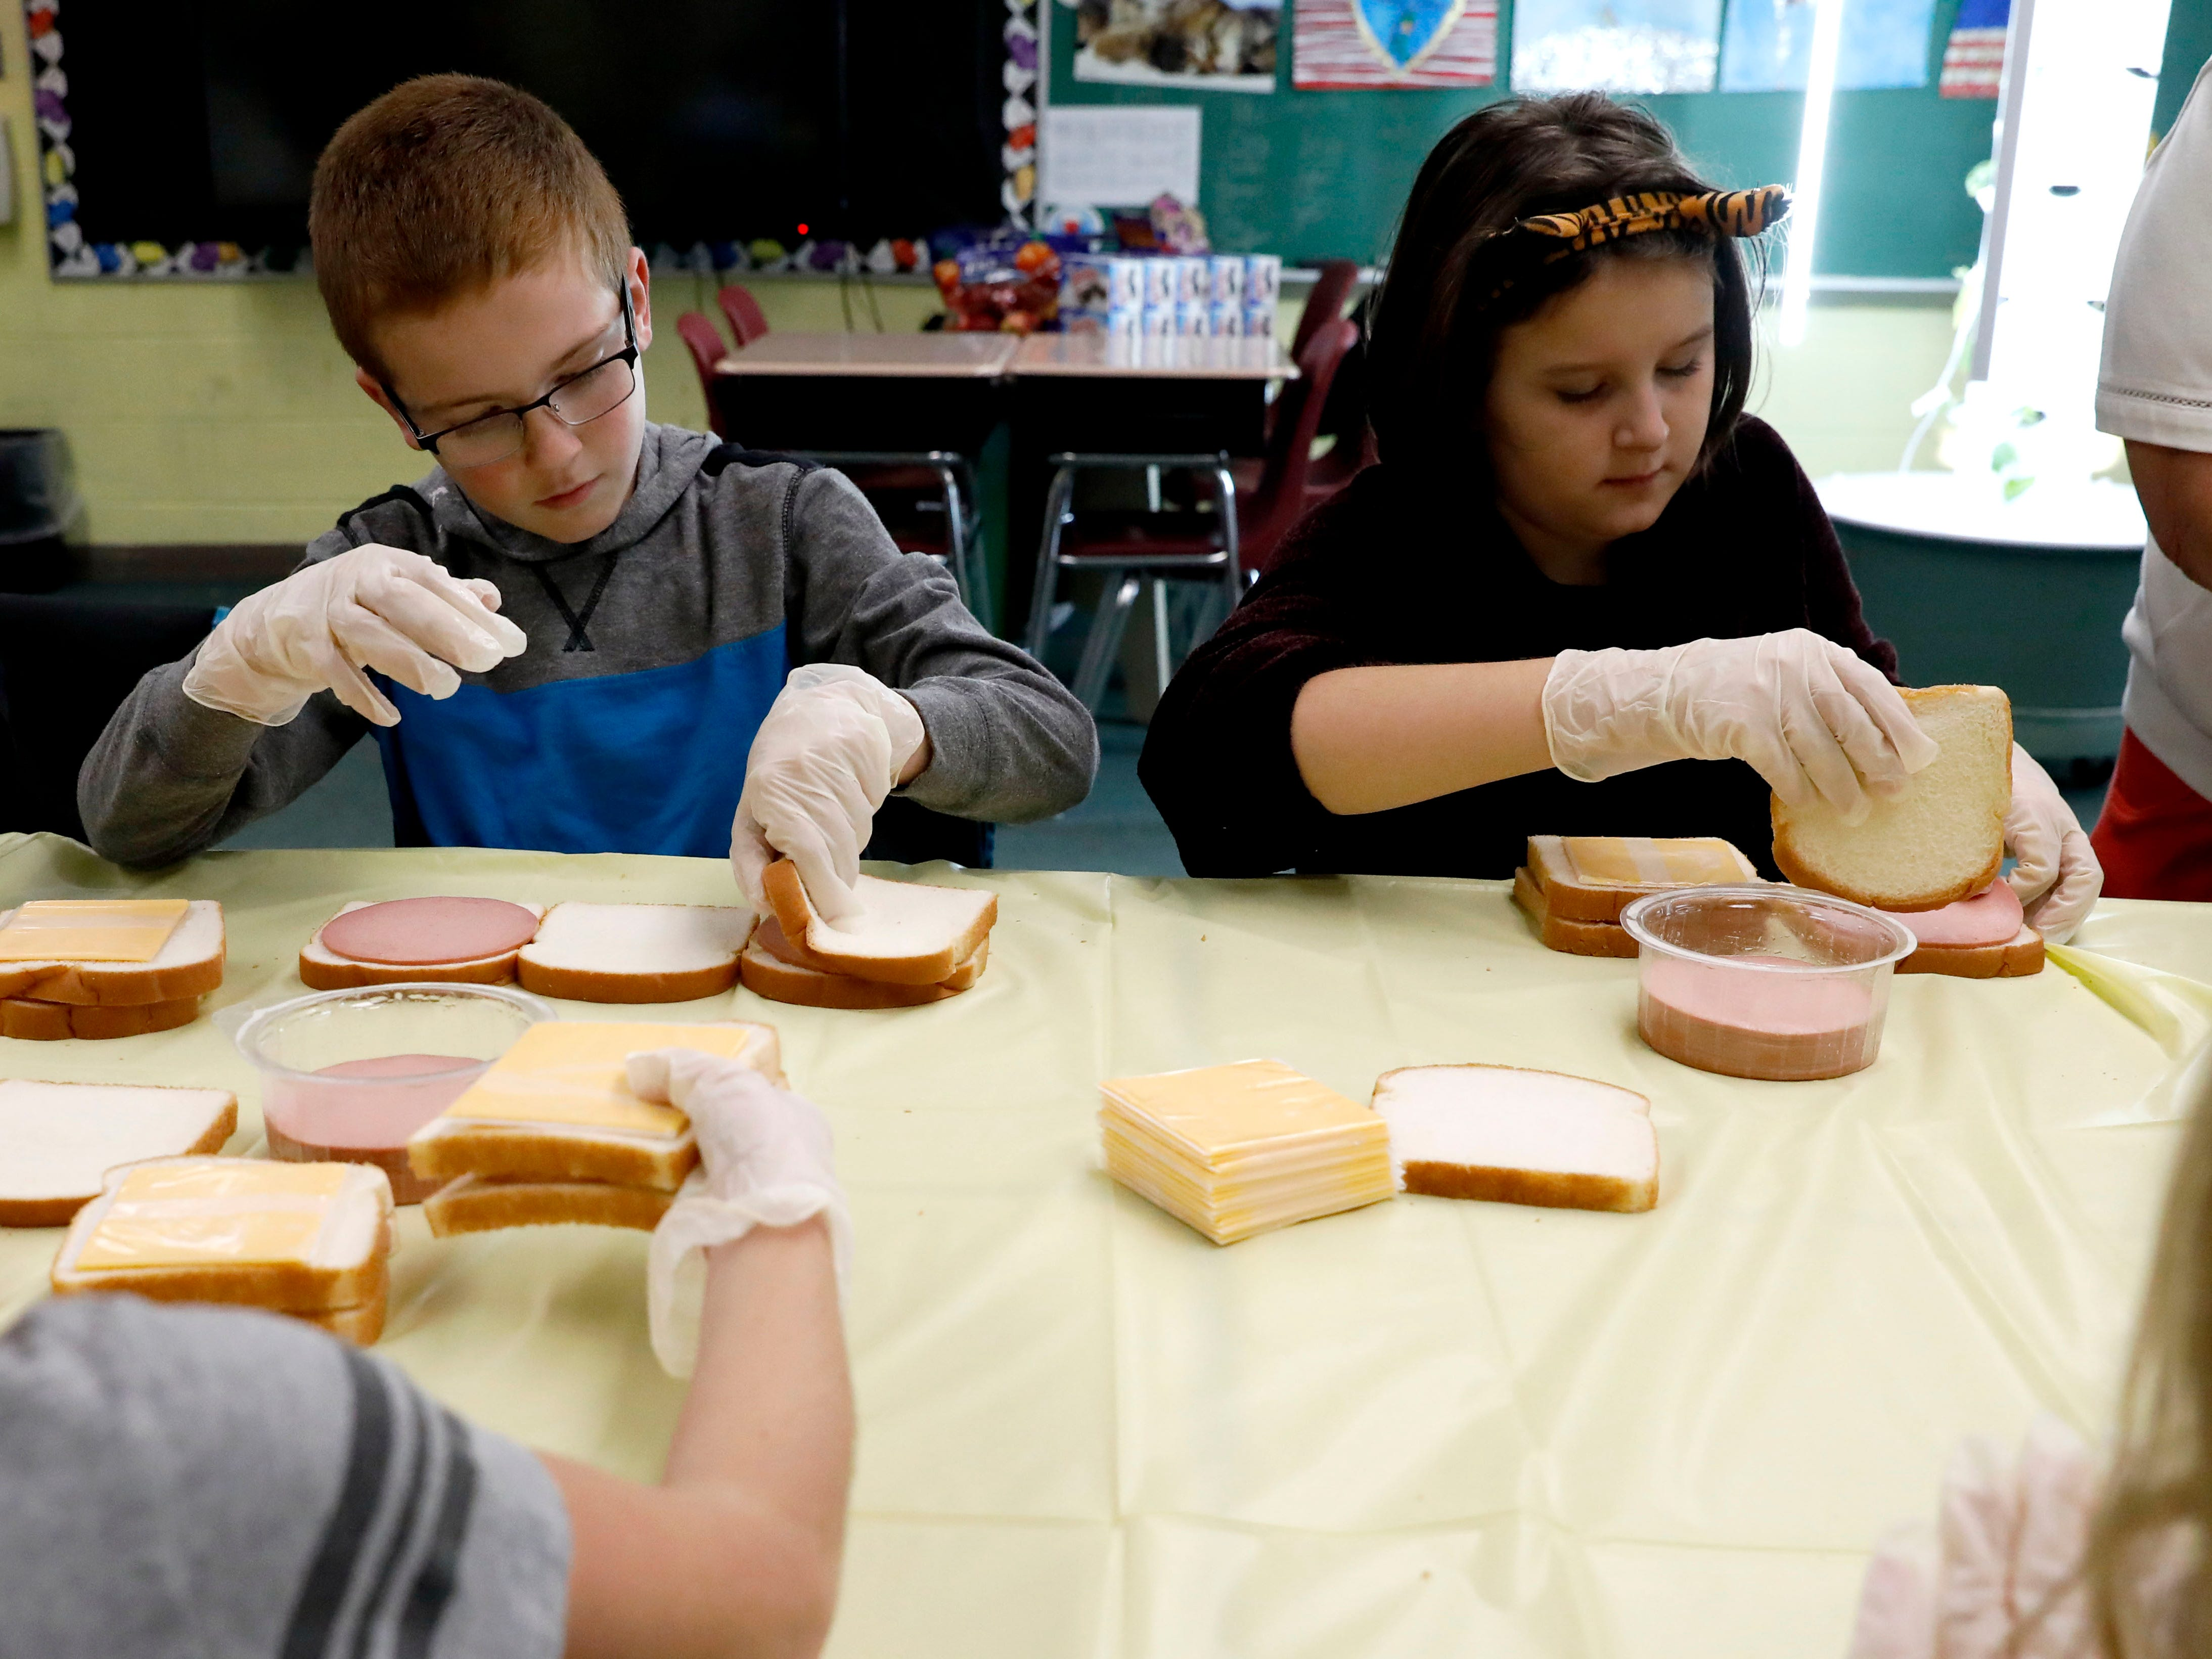 Ethan Schmelzer, left, Ella Fitzgibbon and their fourth grade classmates make bologna and cheese sandwiches Thursday, Nov. 8, 2018, at St. Bernadette Catholic School in Lancaster.